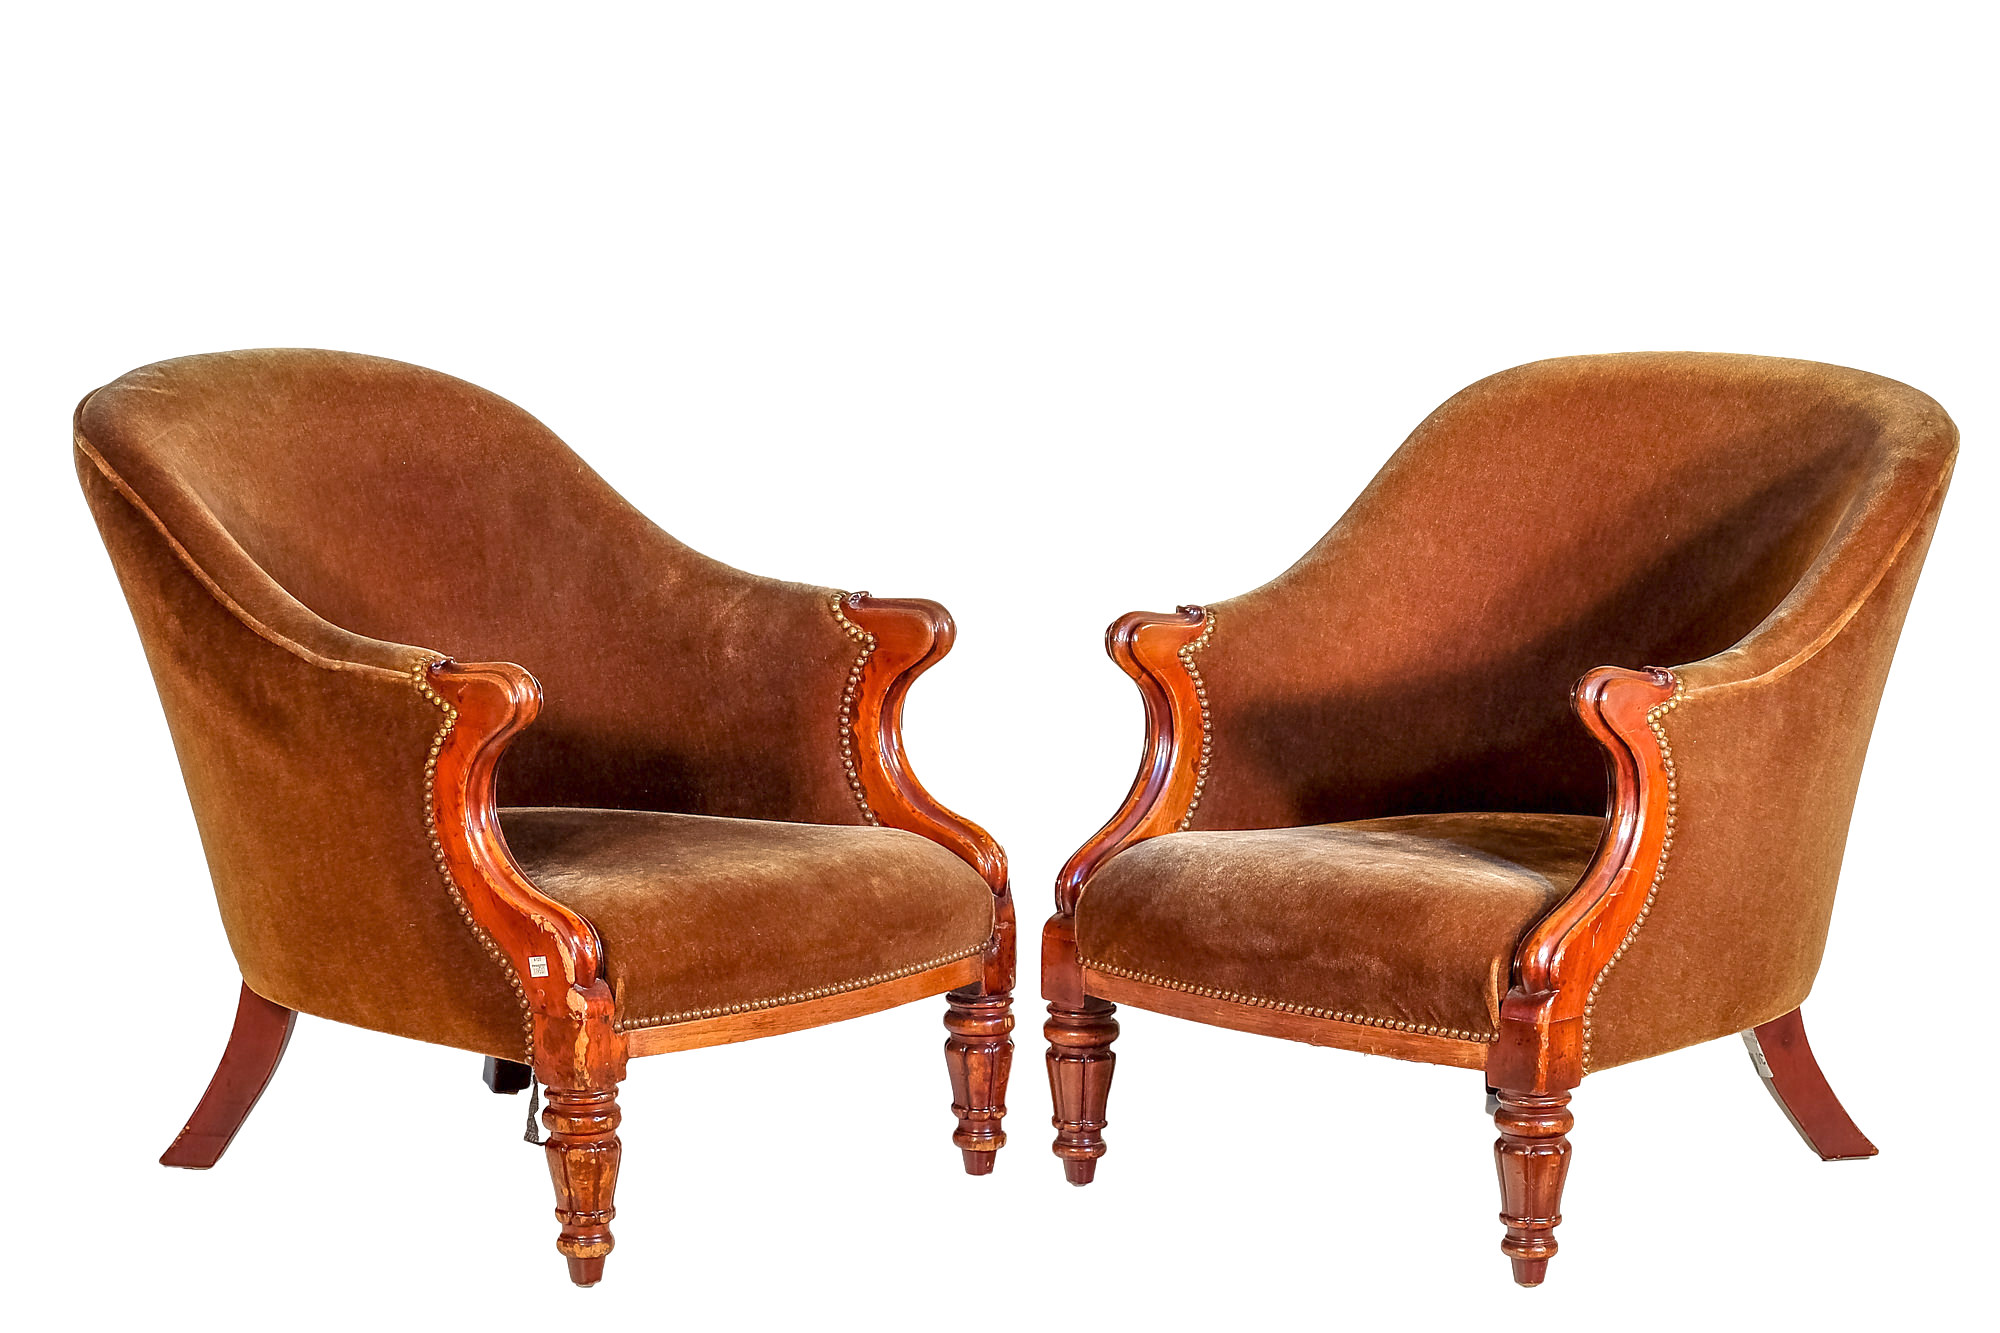 'Pair Victorian Mahogany Spoon Back Armchairs Olive Green Velvet Upholstery Circa 1860'